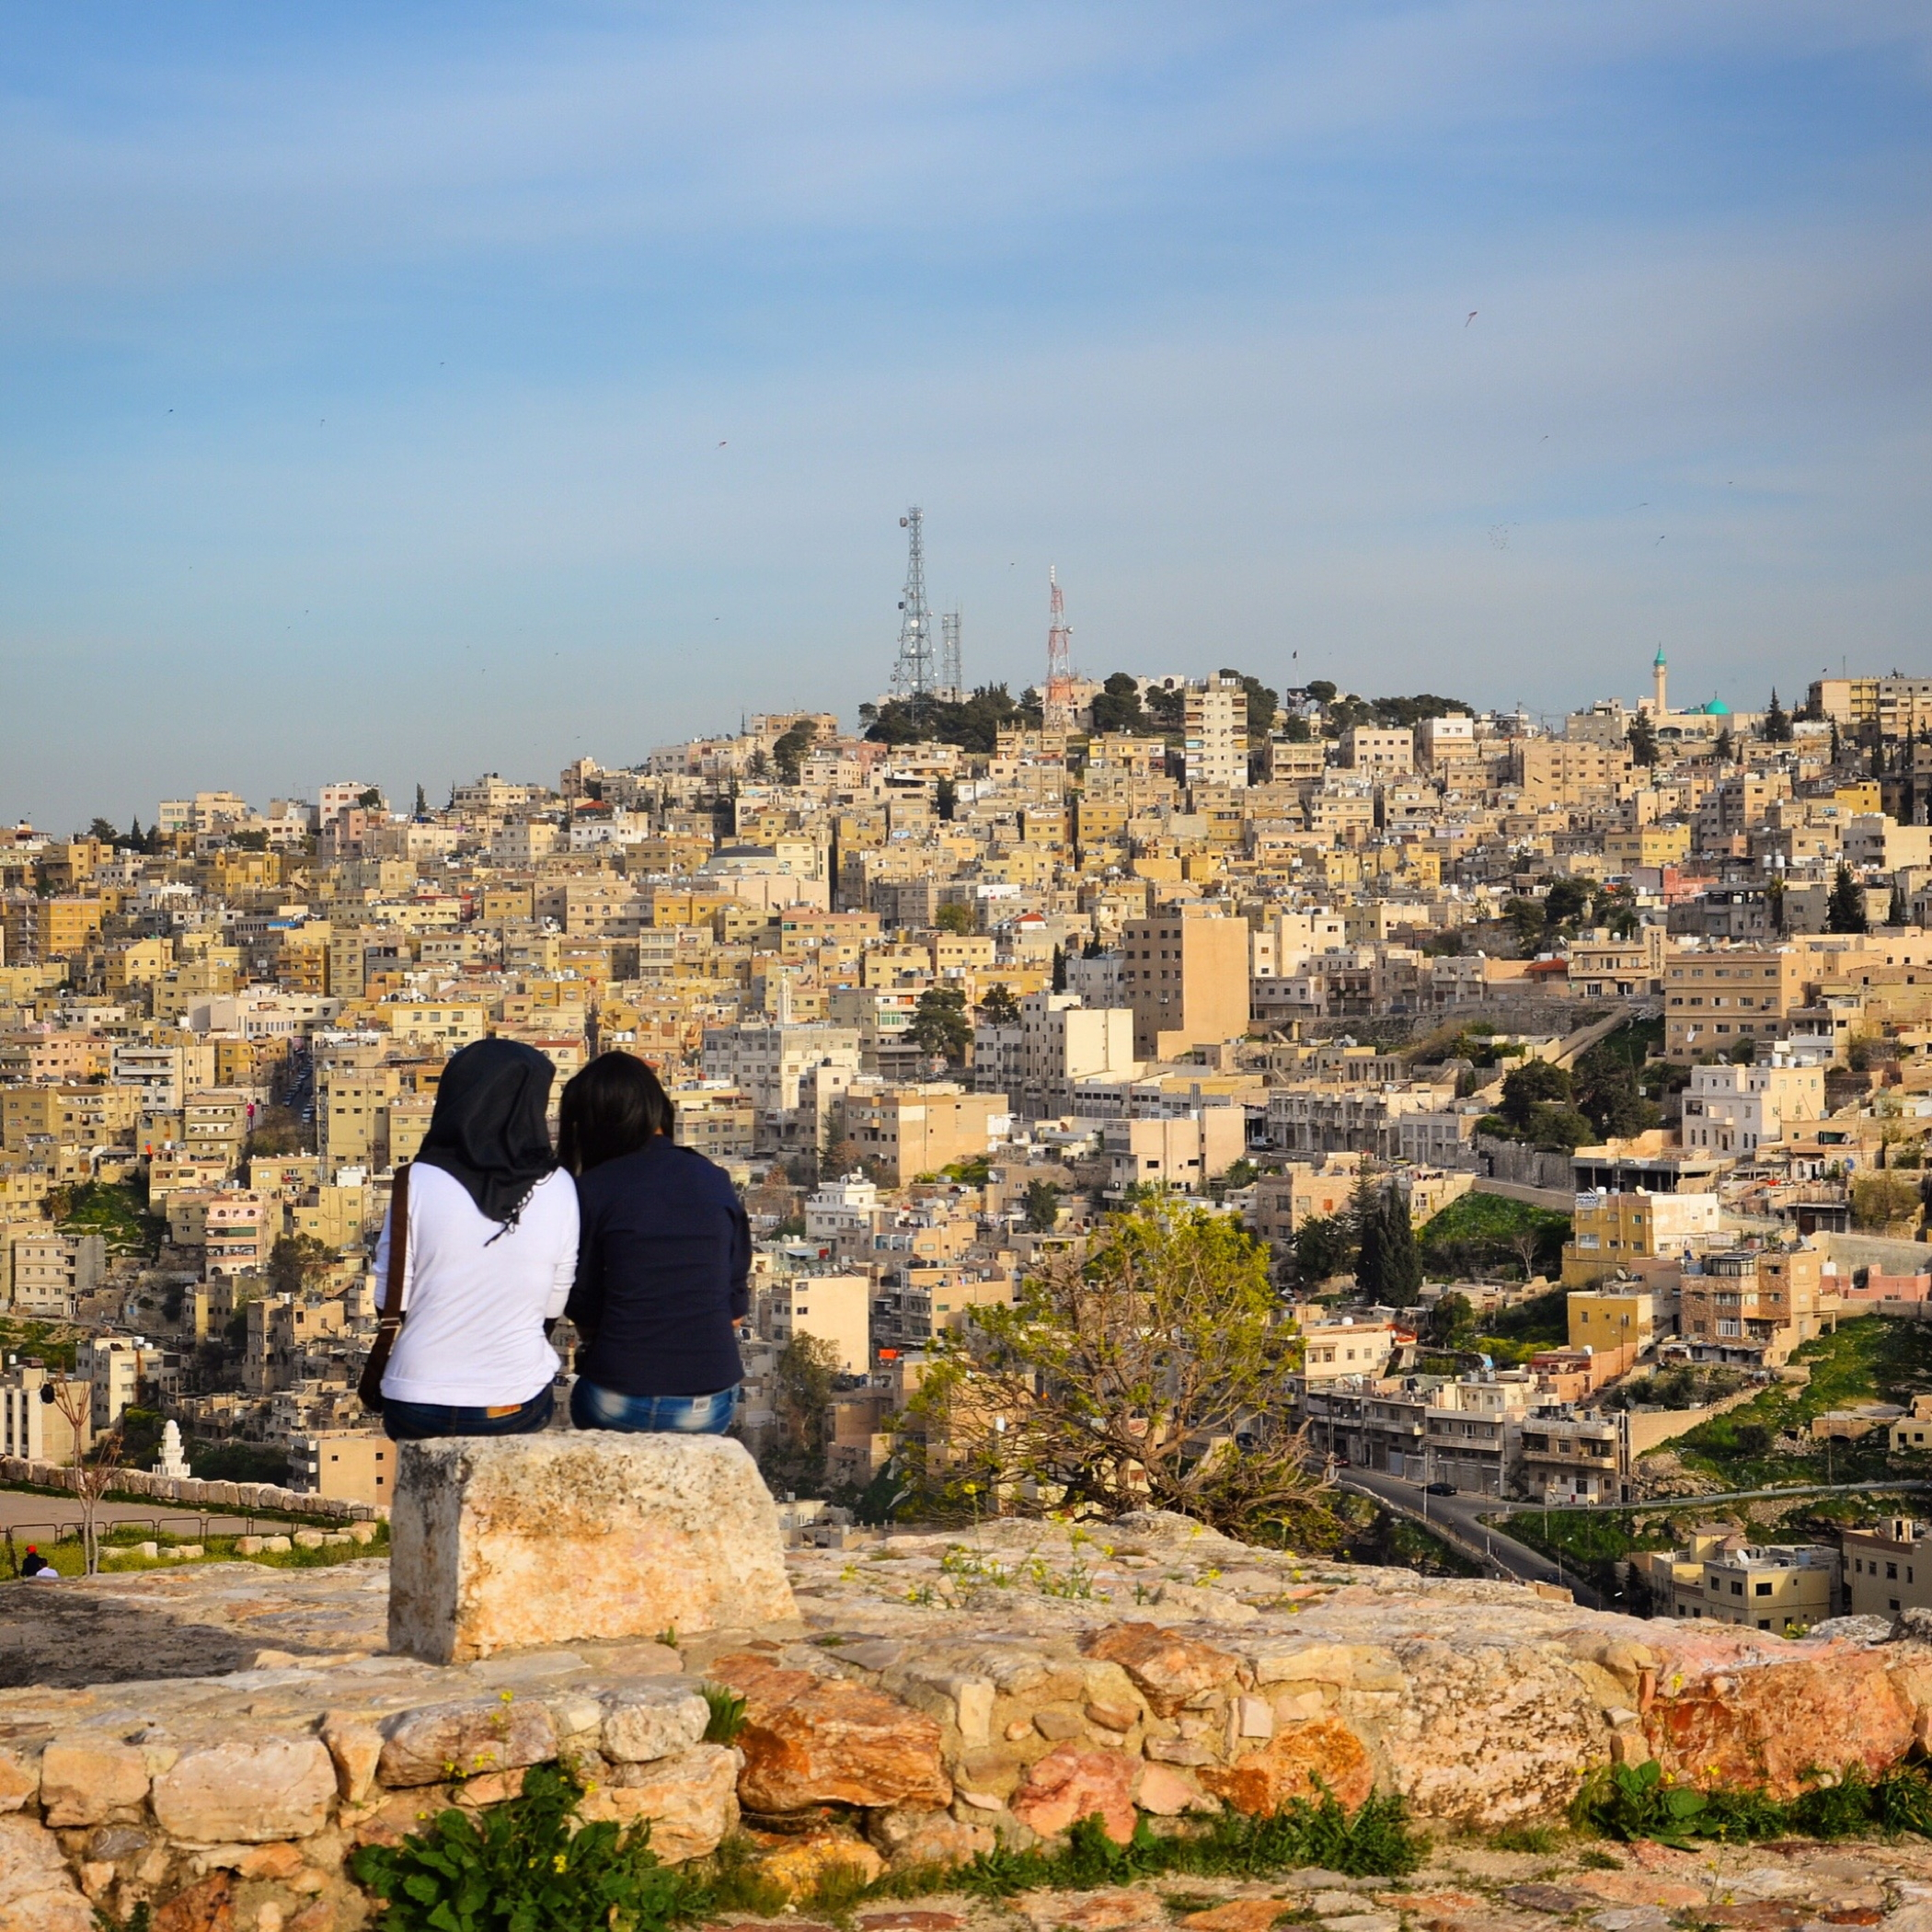 One favorite Instagram 2015 photo from Amman in Jordan